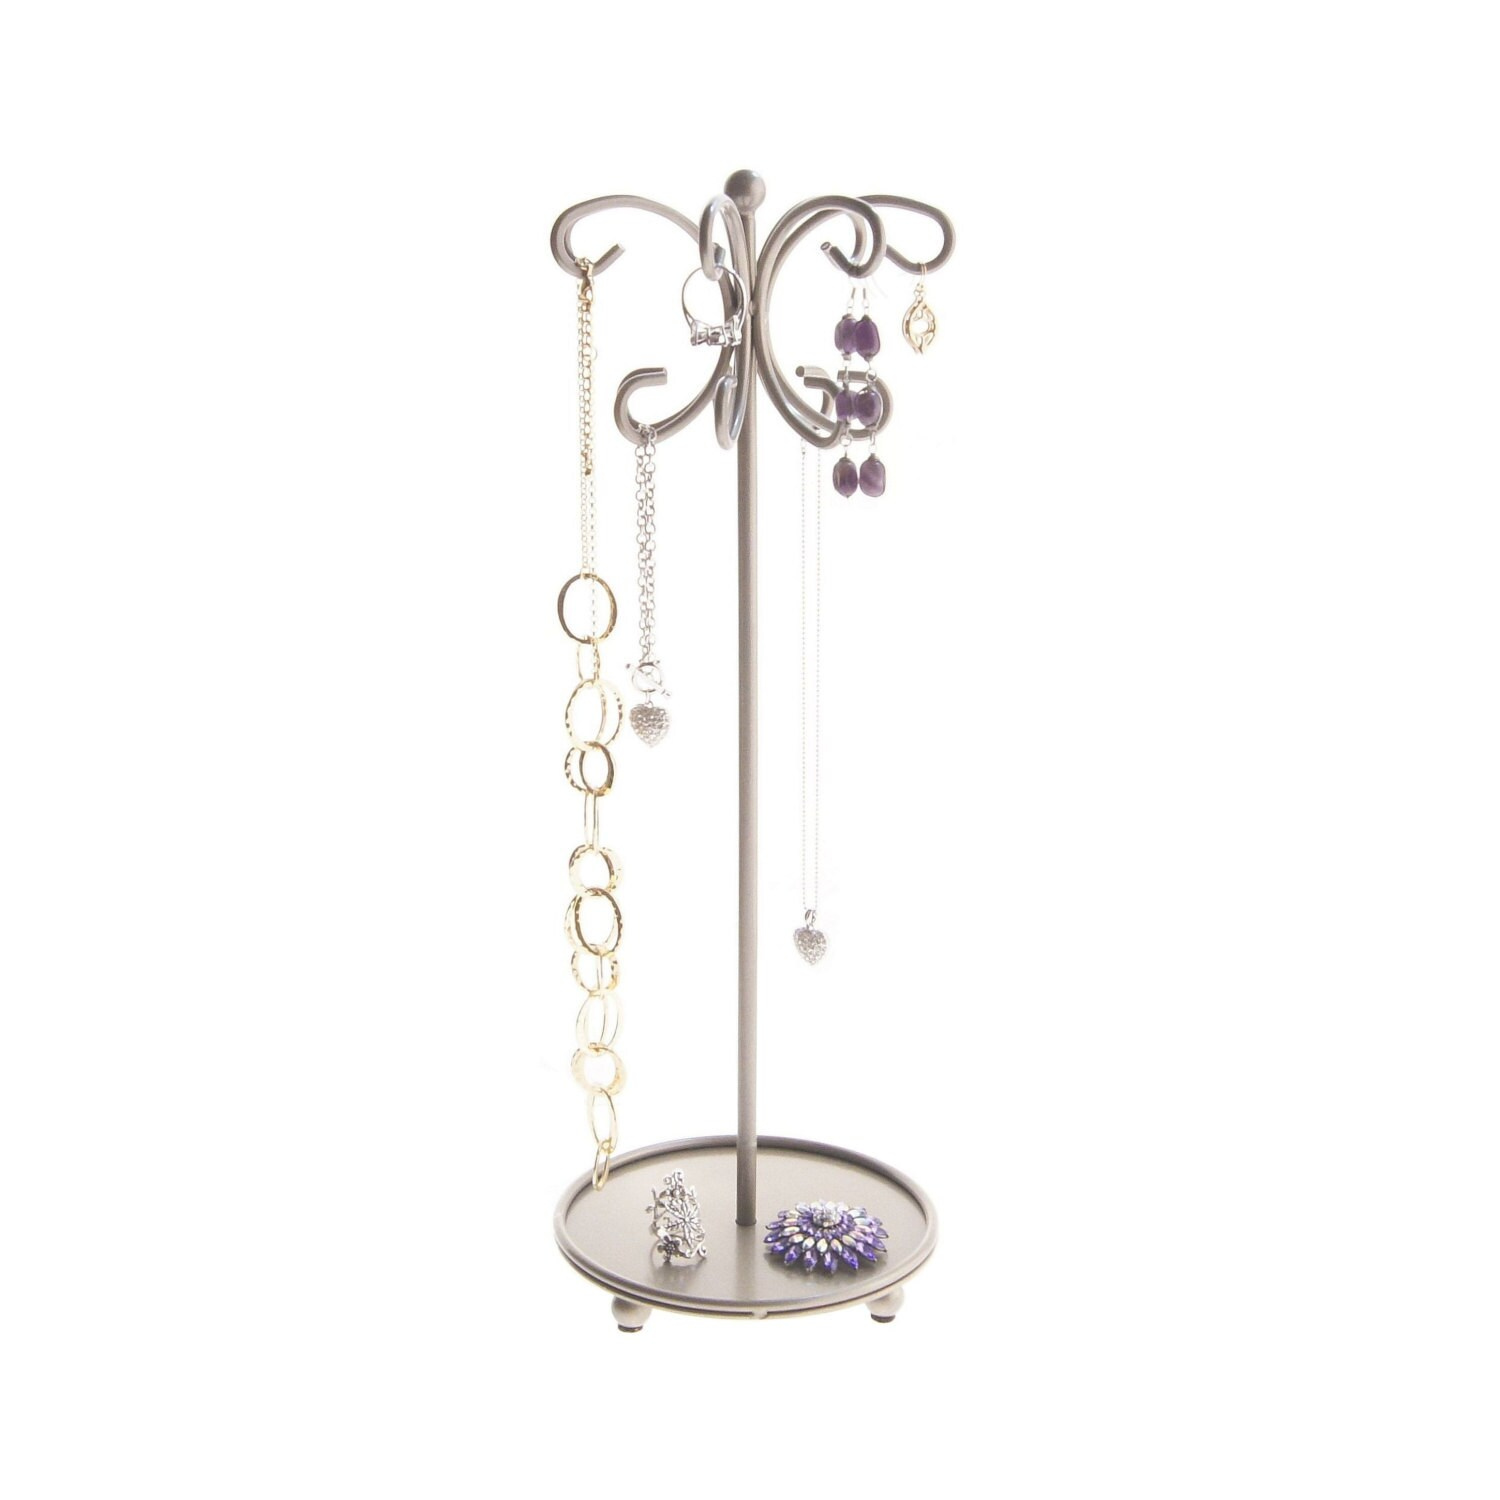 necklace holder stand jewelry organizer hanging necklace tree